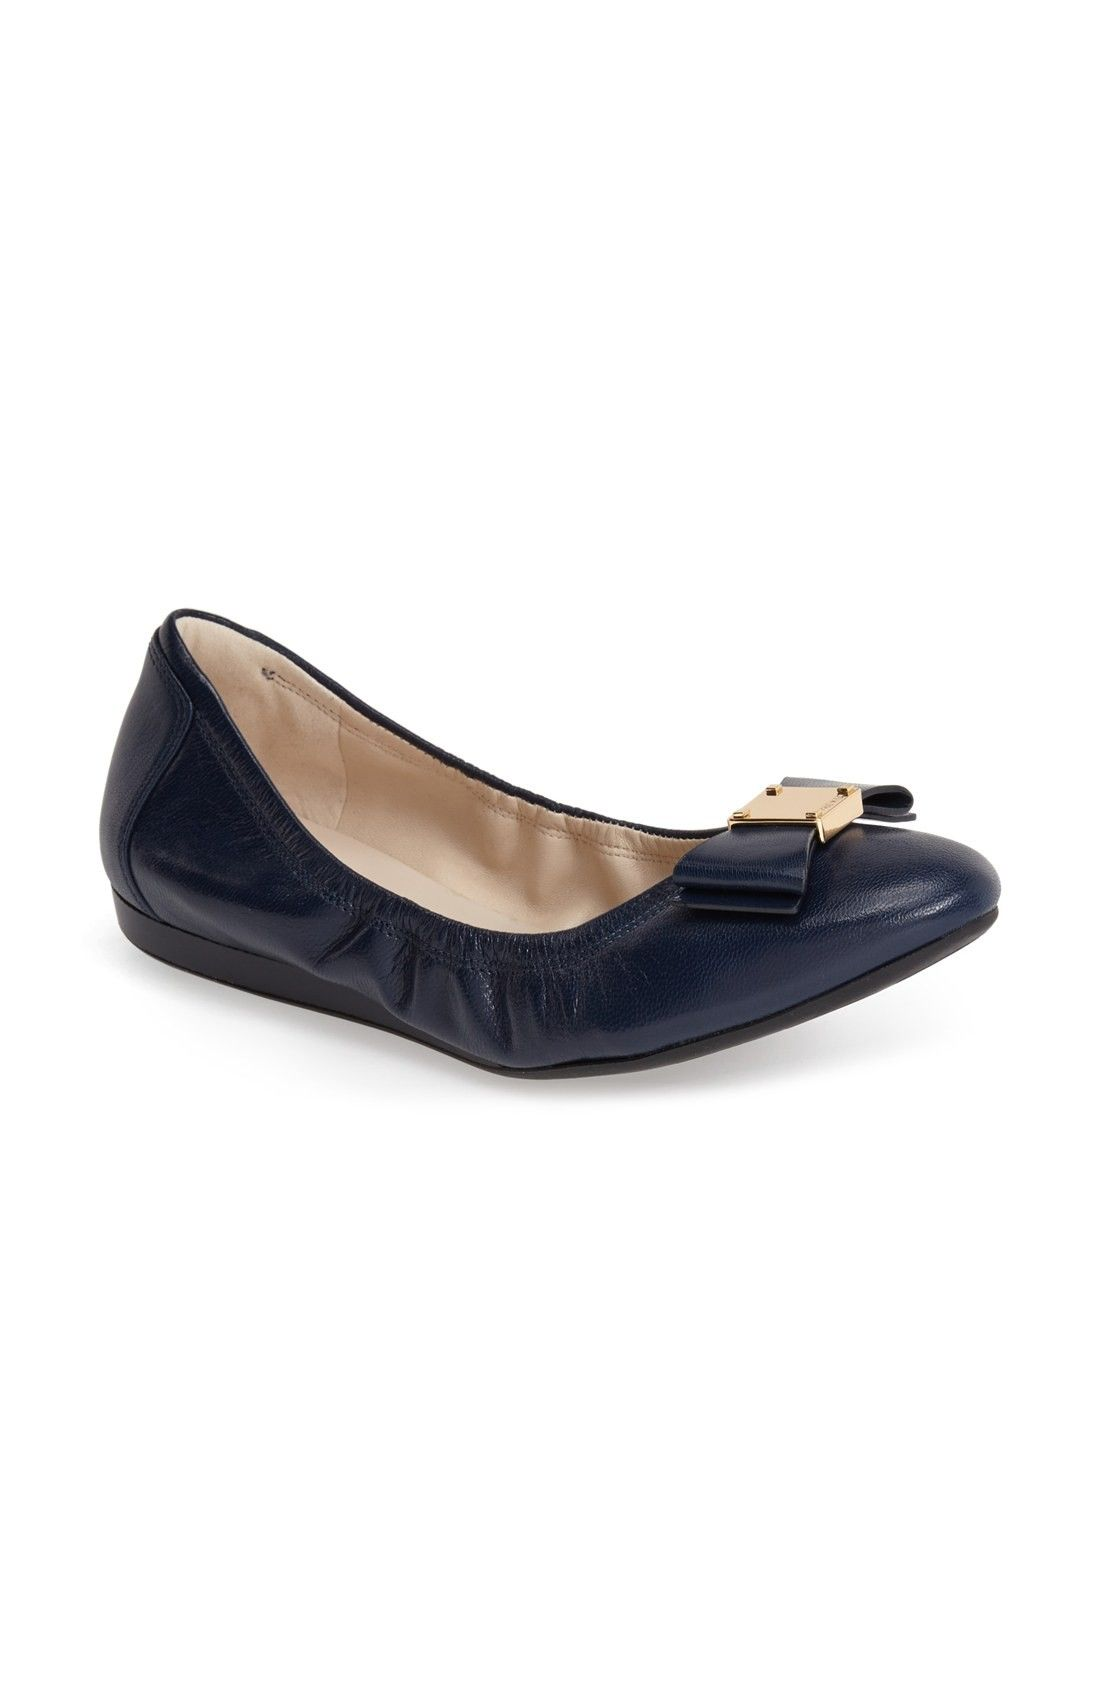 COLE HAAN | 'Tali' Leather Ballet Flat #Shoes #Flats #COLE HAAN